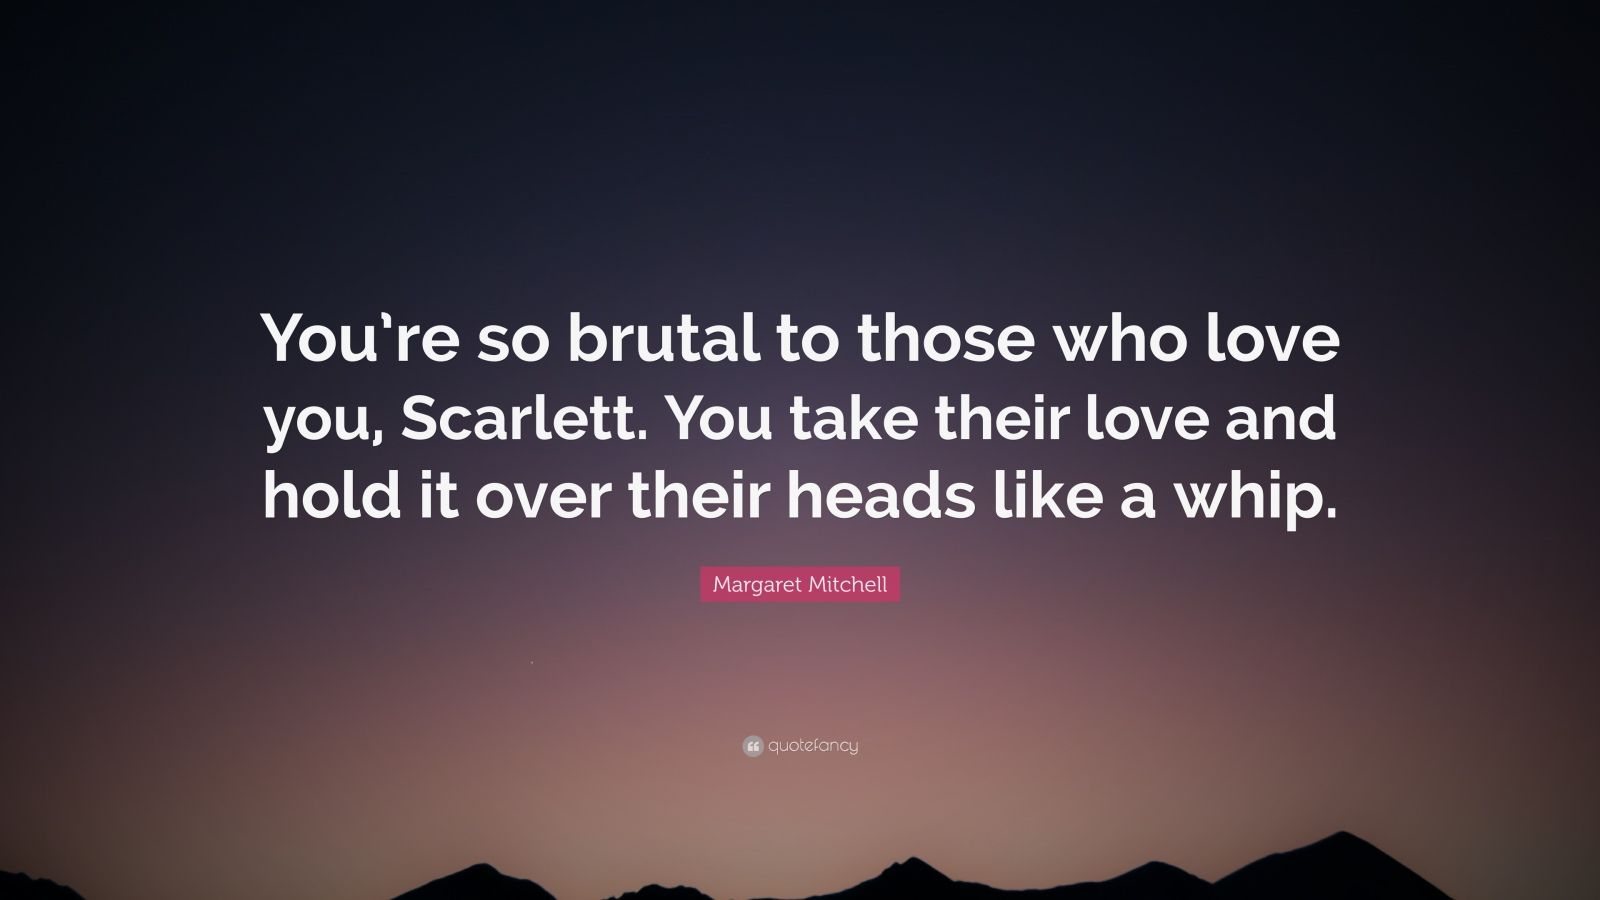 """Margaret Mitchell Quote: """"You're so brutal to those who love you, Scarlett. You take their love and hold it over their heads like a whip."""""""